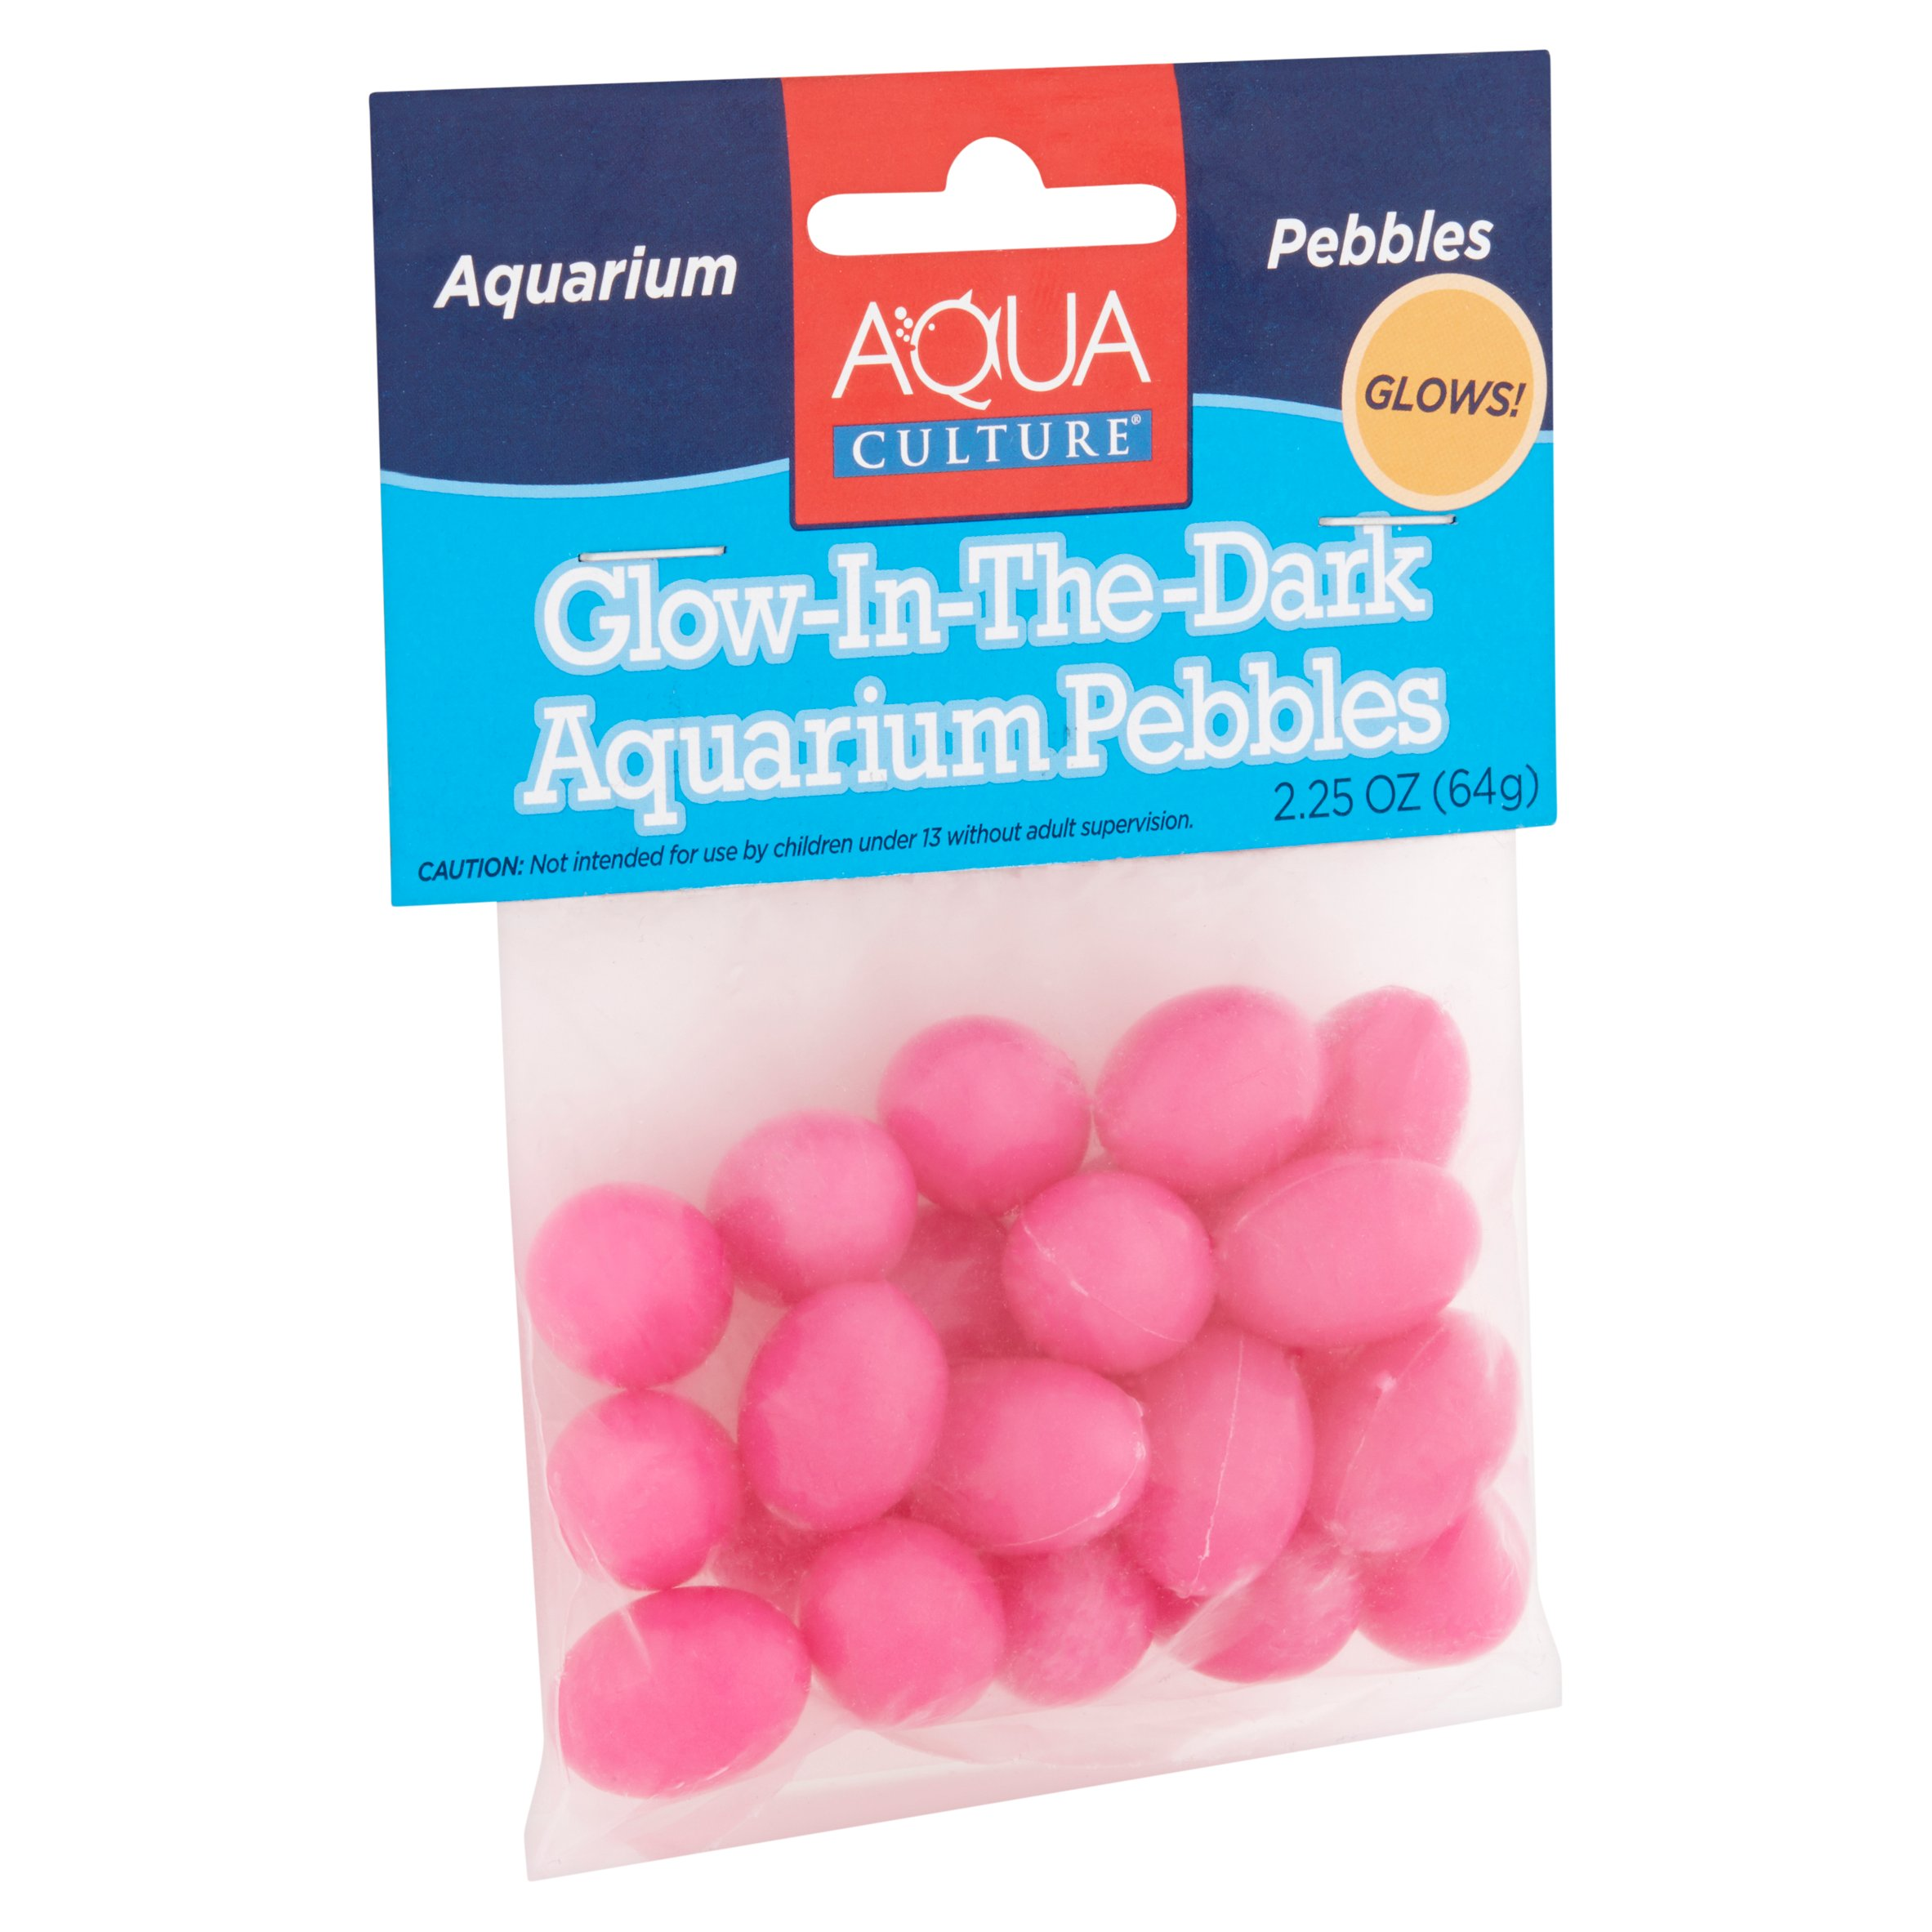 AquaCulture Glow in The Dark Aquarium Pebbles 2 25 oz Walmart